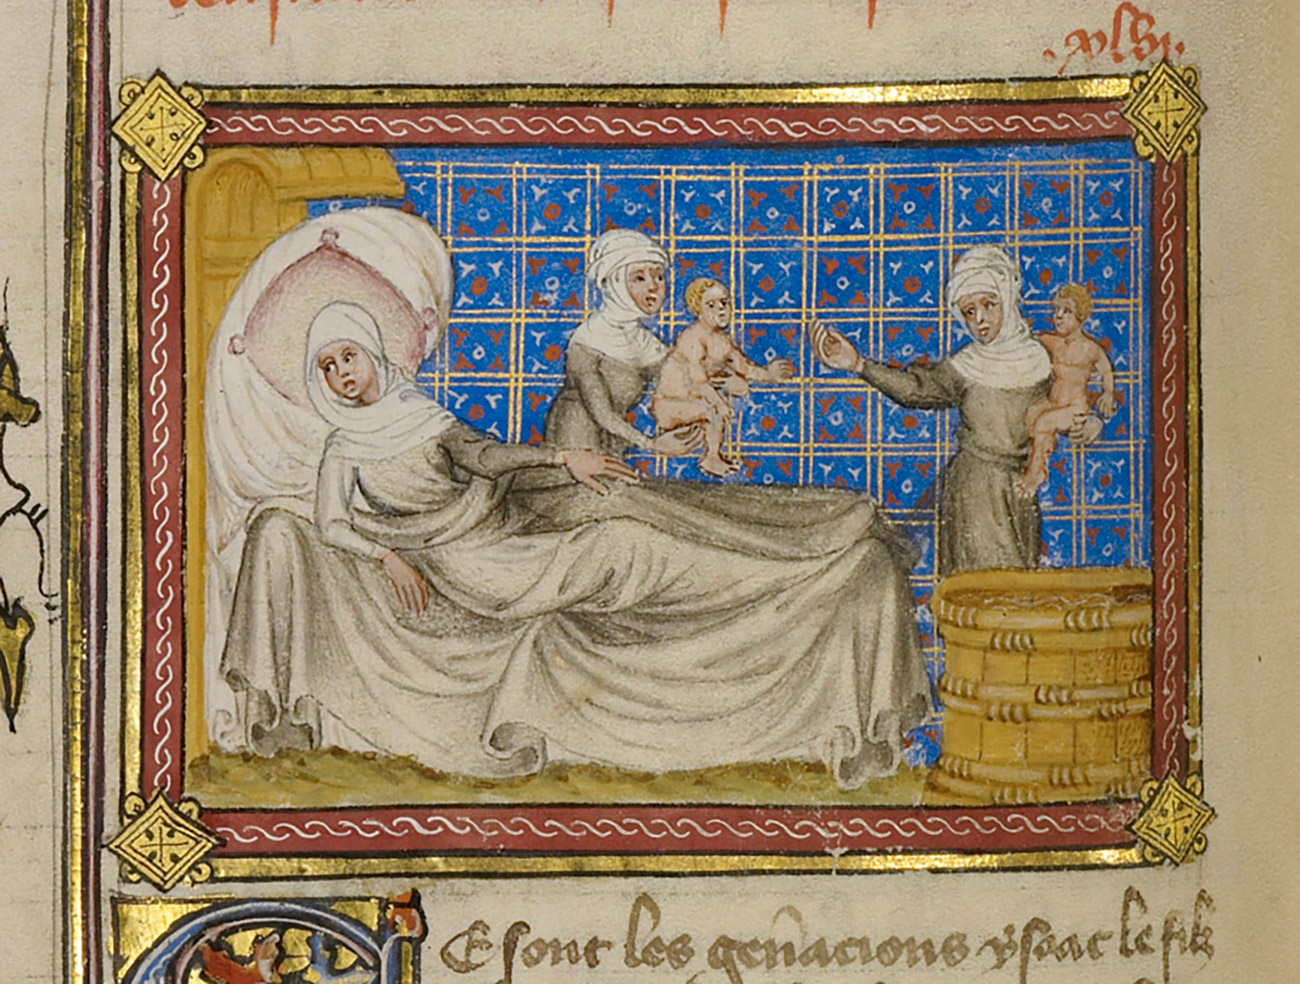 Illuminated drawing of woman wrapped in robes lying on a bed, whole two other women each carry babies to a tub of water